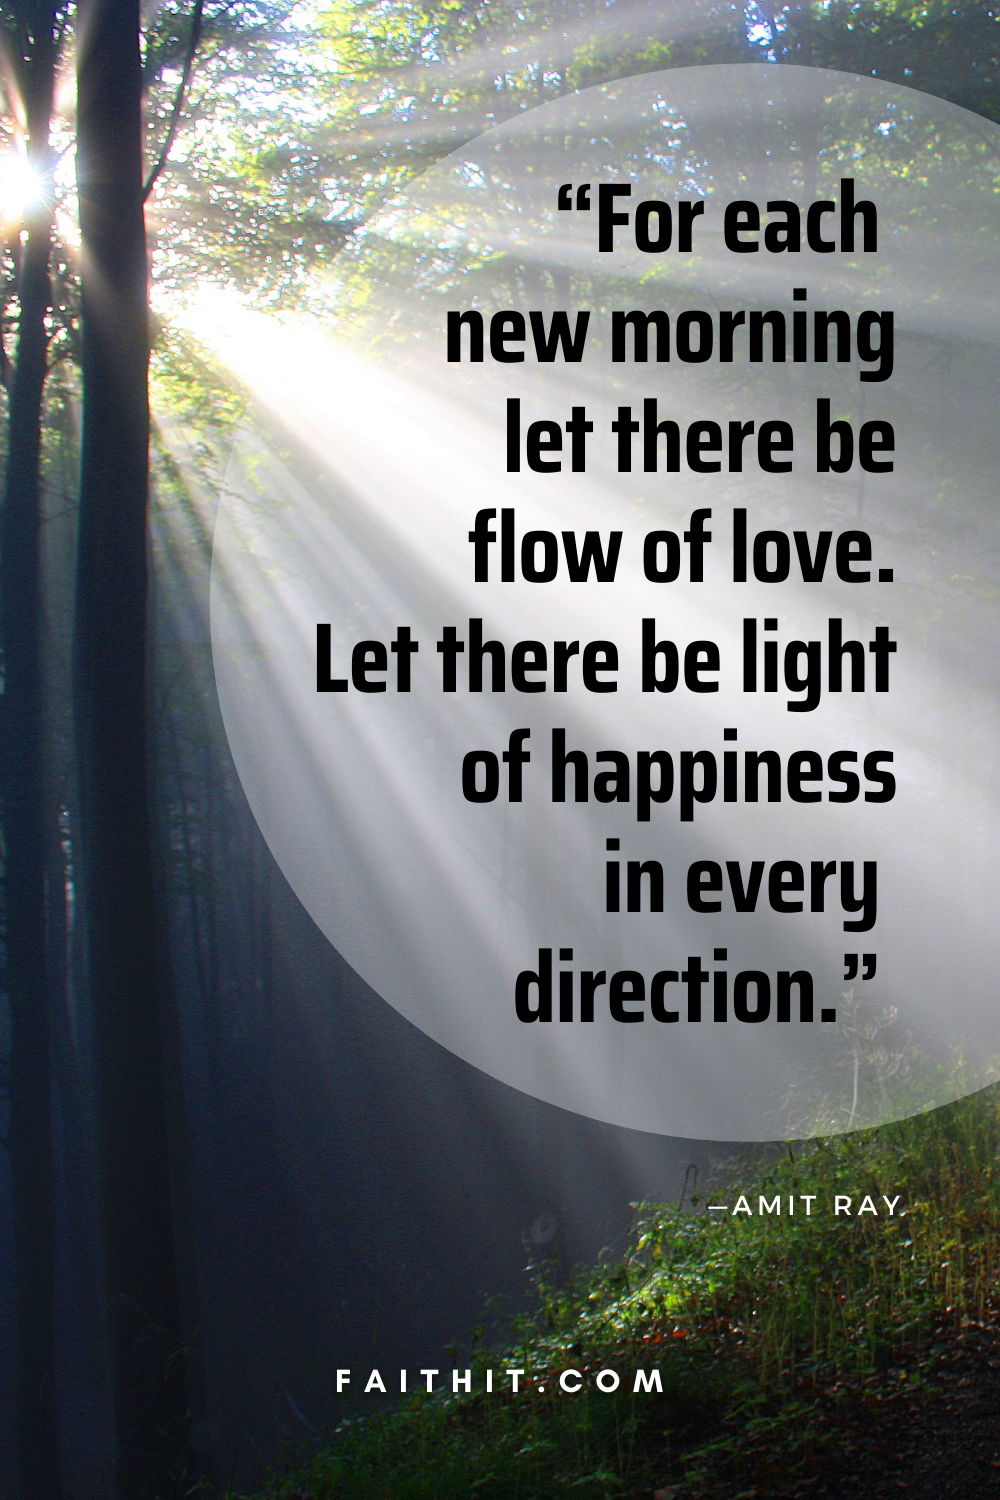 good morning quotes for each new morning